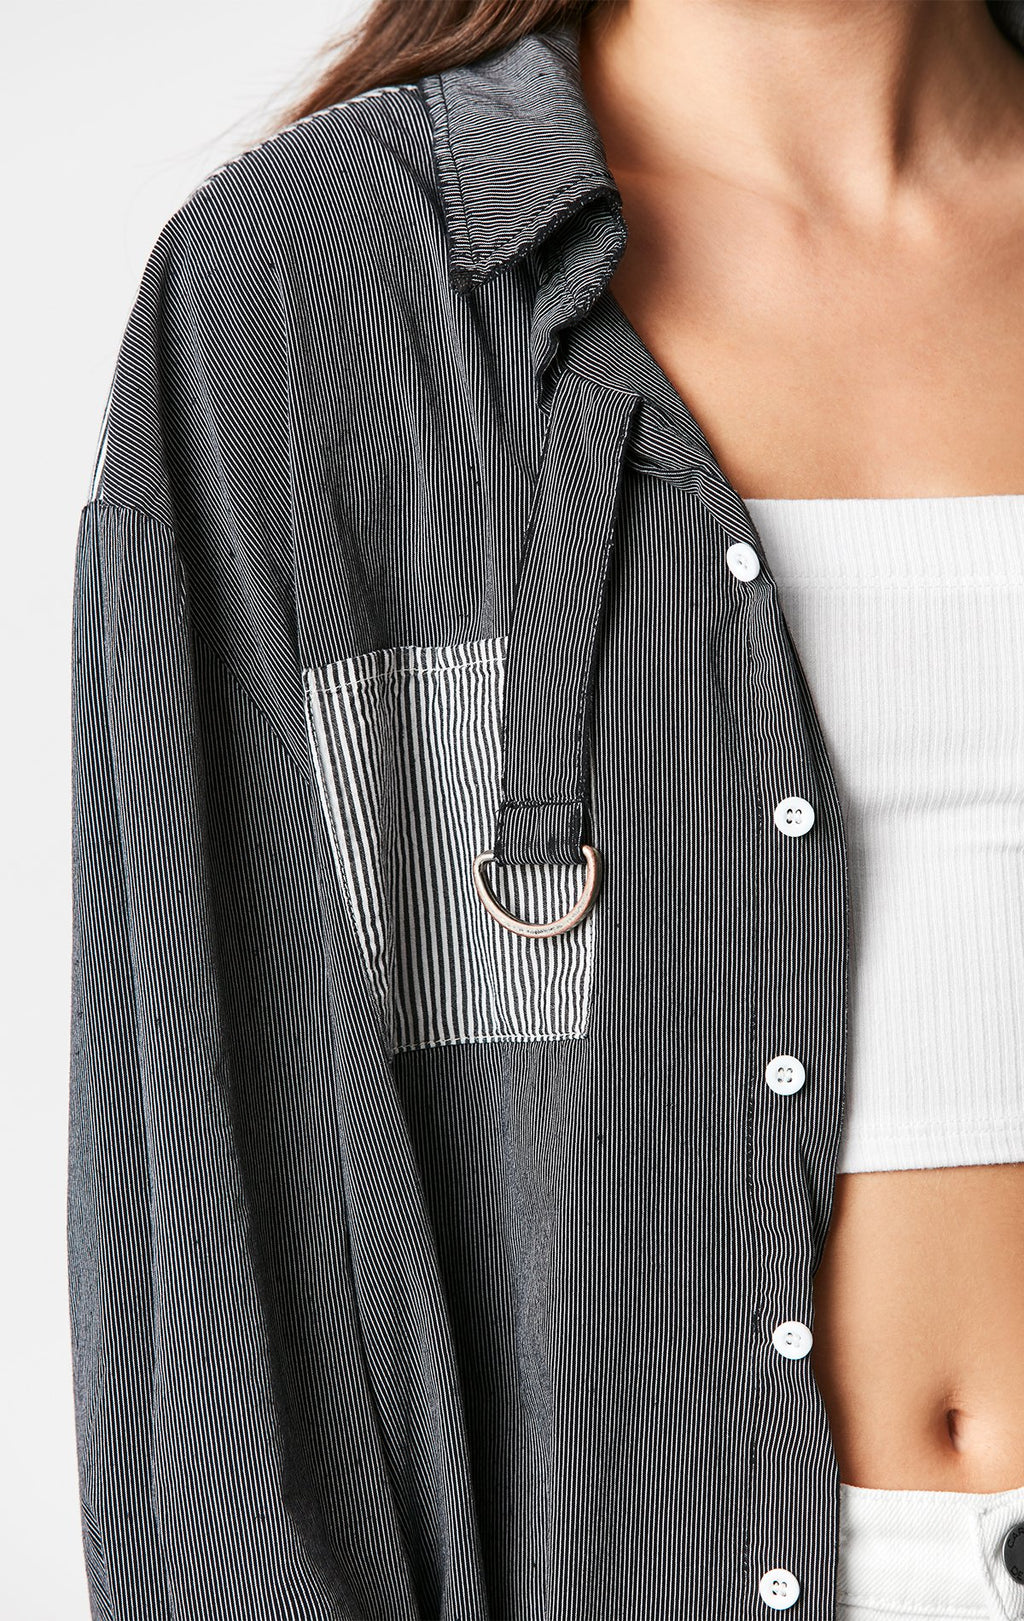 Carmar Denim: CONTRAST STRIPE D-RING SHIRT - WOVEN TOP